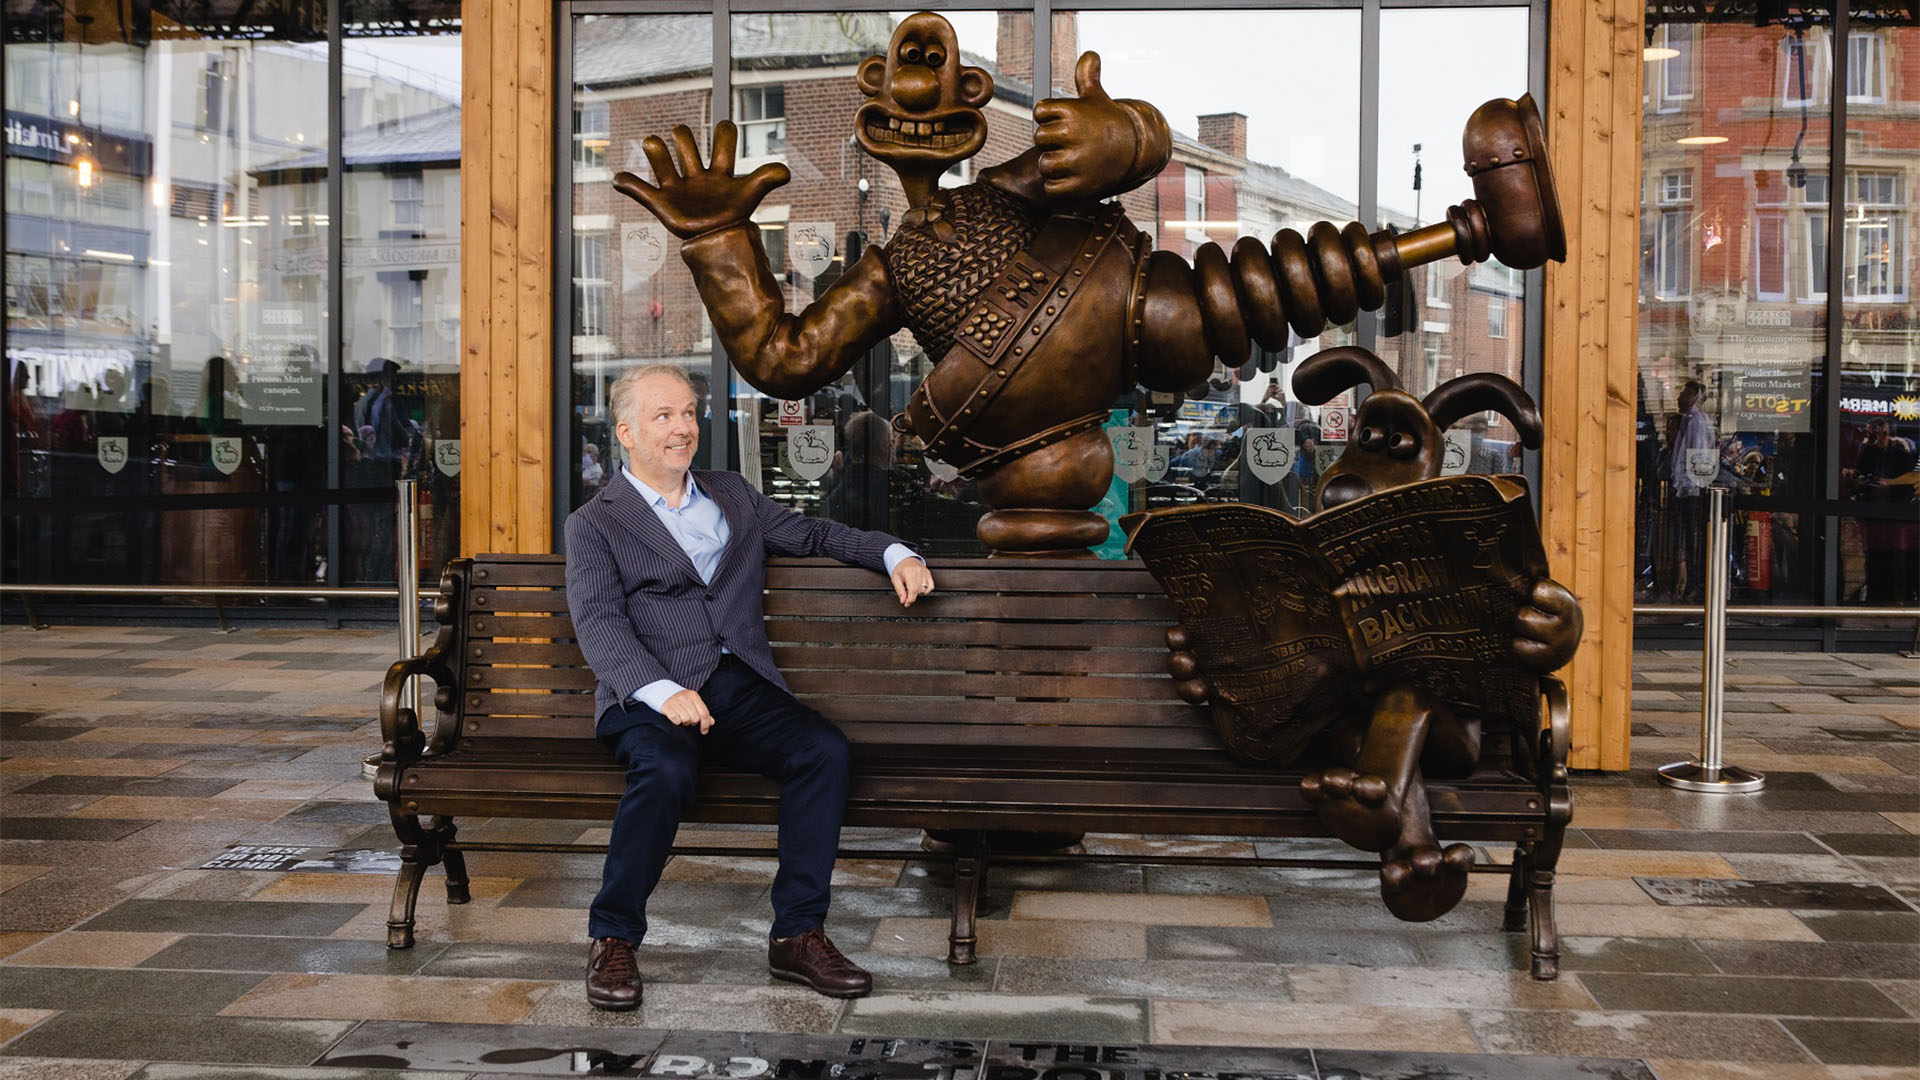 New Wallace & Gromit bench sculpture officially unveiled in Preston by Nick Park